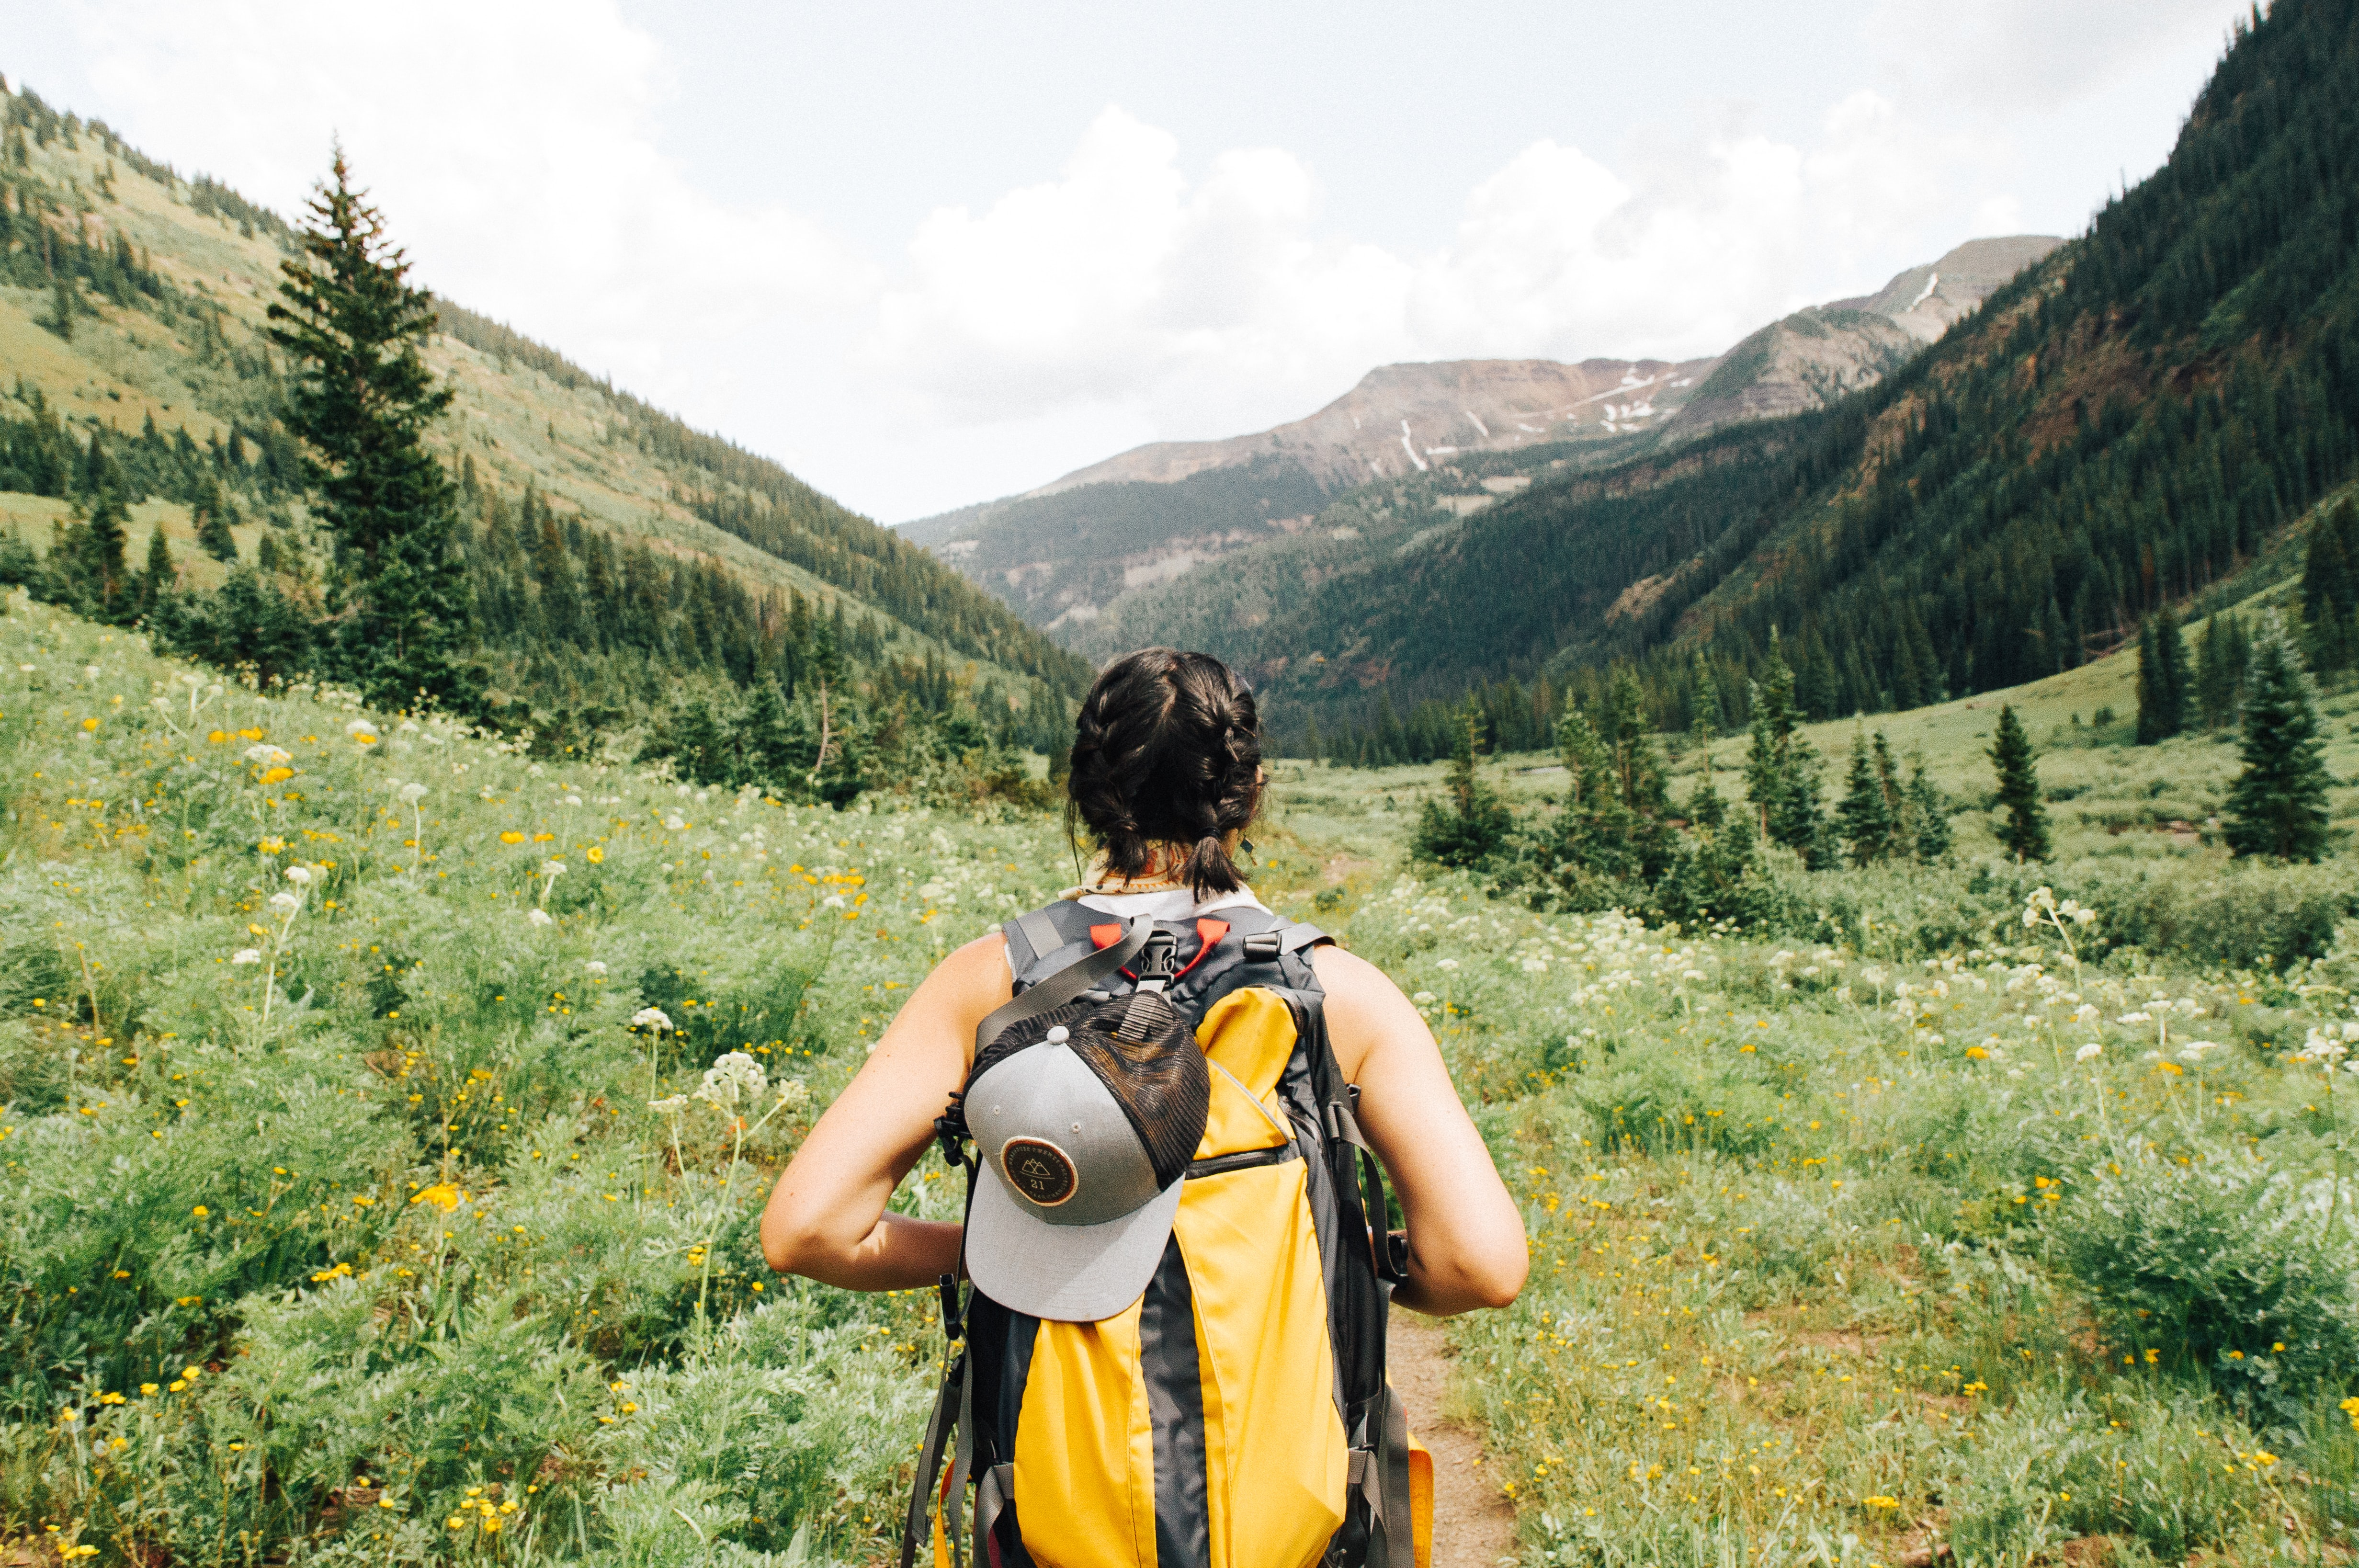 15 Ultimate Solo Hiking Tips For Women